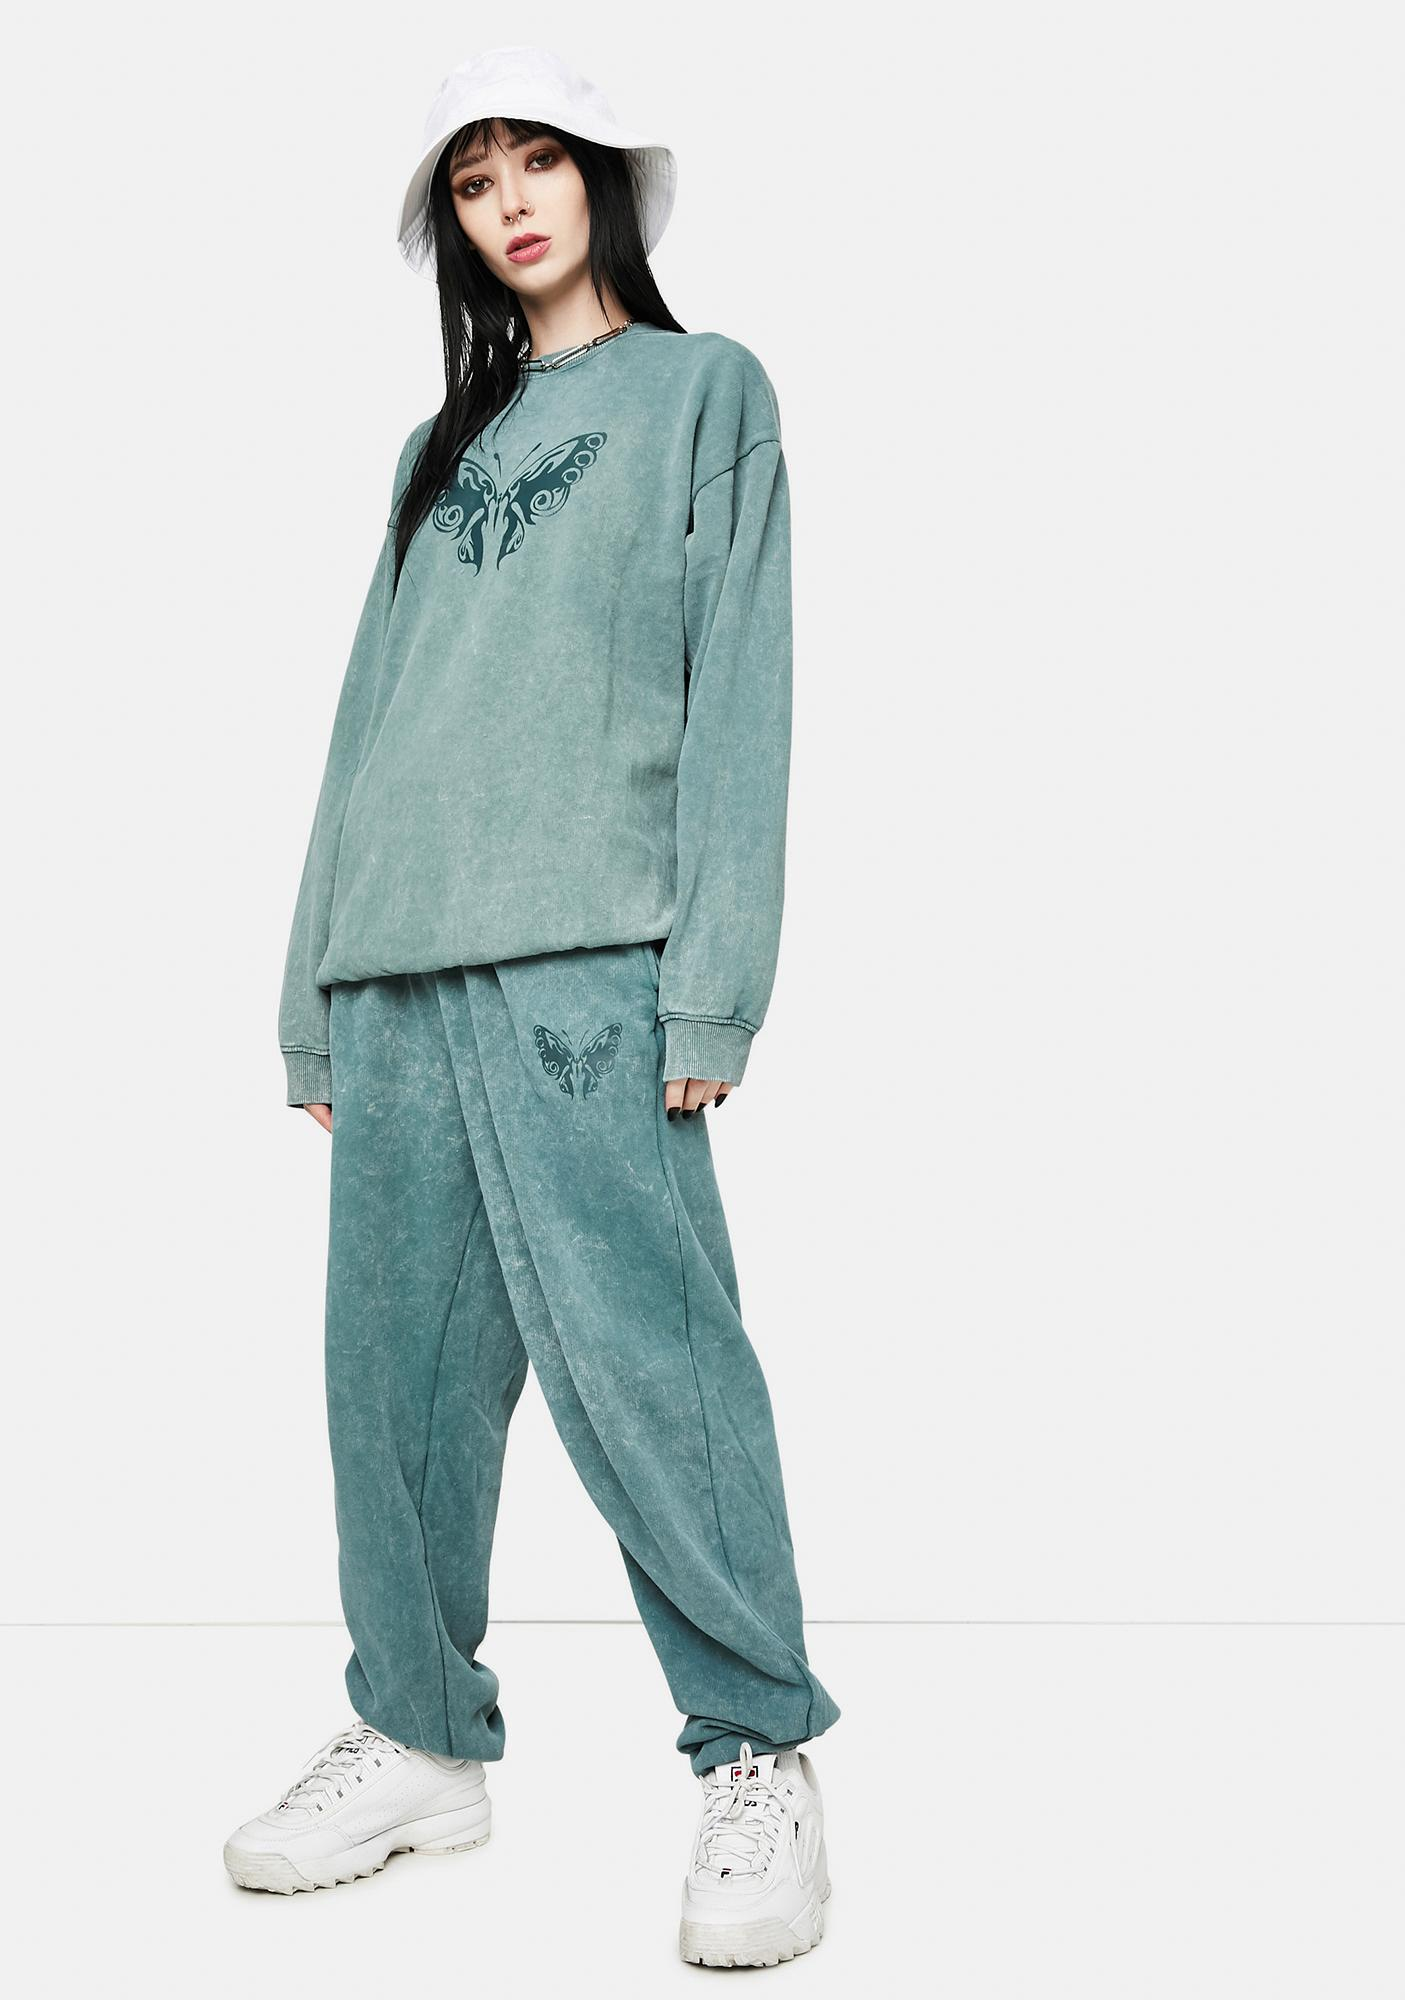 Daisy Street Megan Washed Green Sweatpants